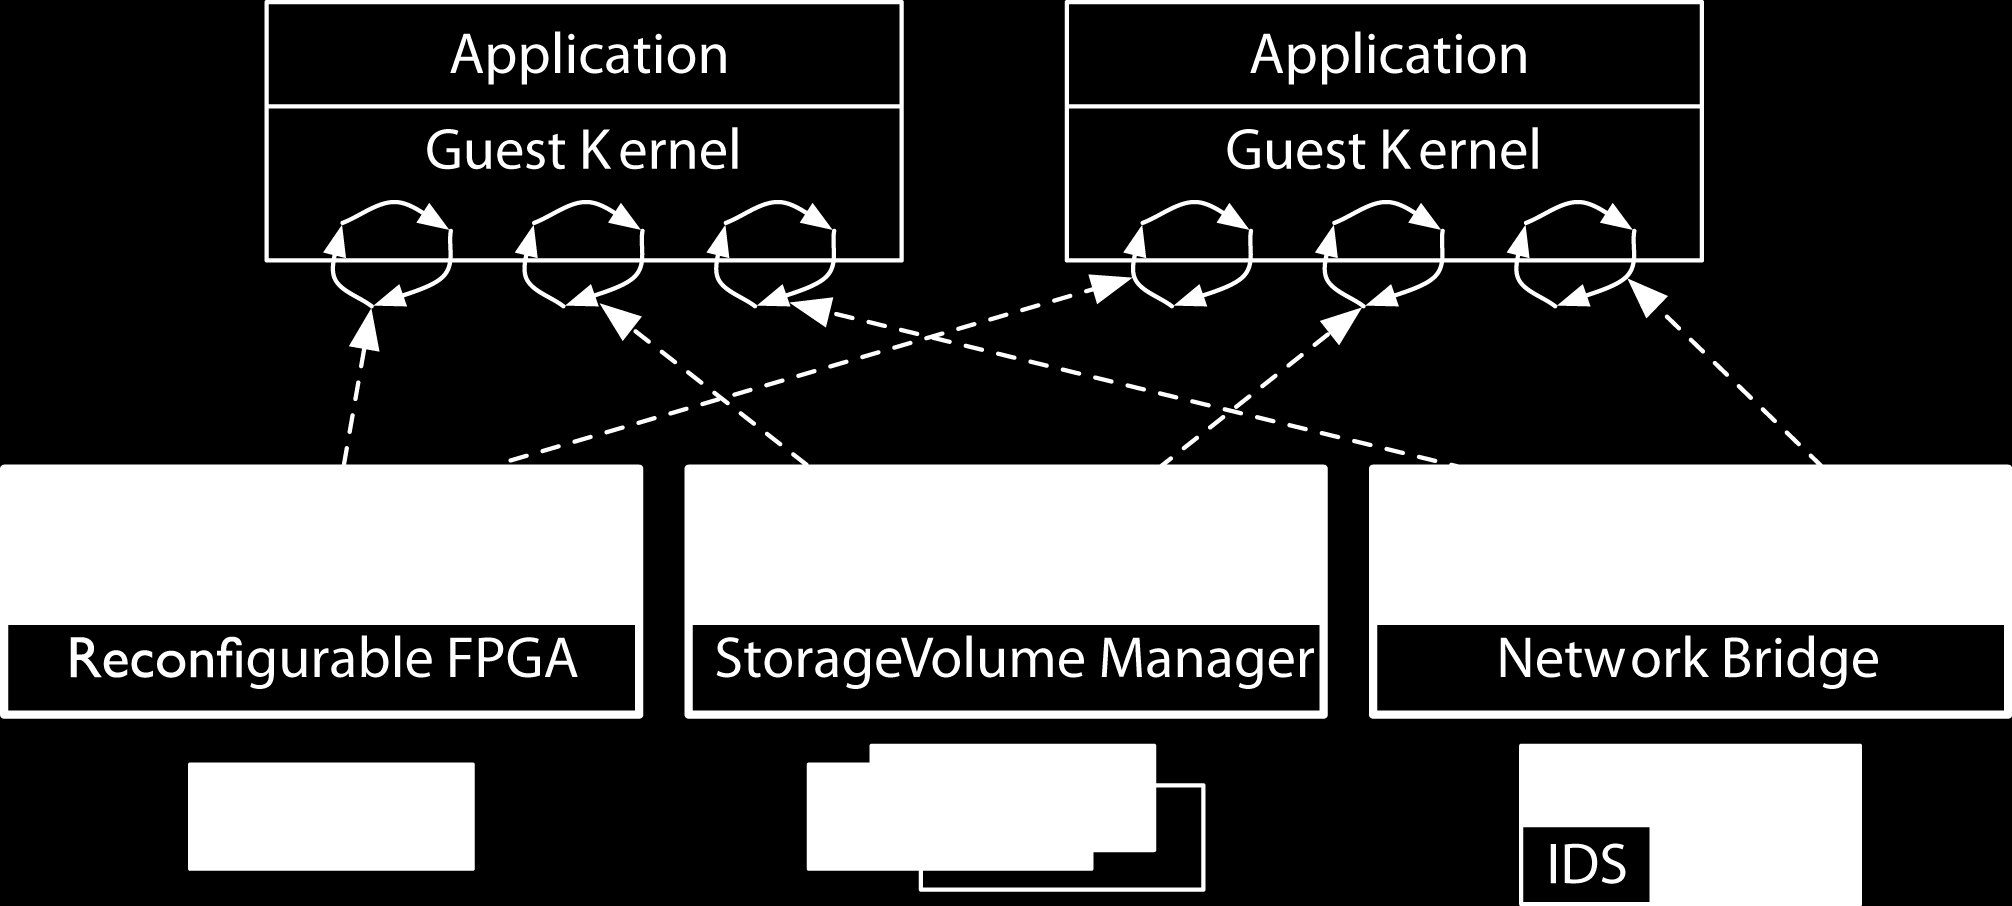 B. Datacenter Programming Figure 1. Split-trust devices on virtualised platforms have a management domain that partitions physical resources, allocates portions to guests, and enforces access rights.